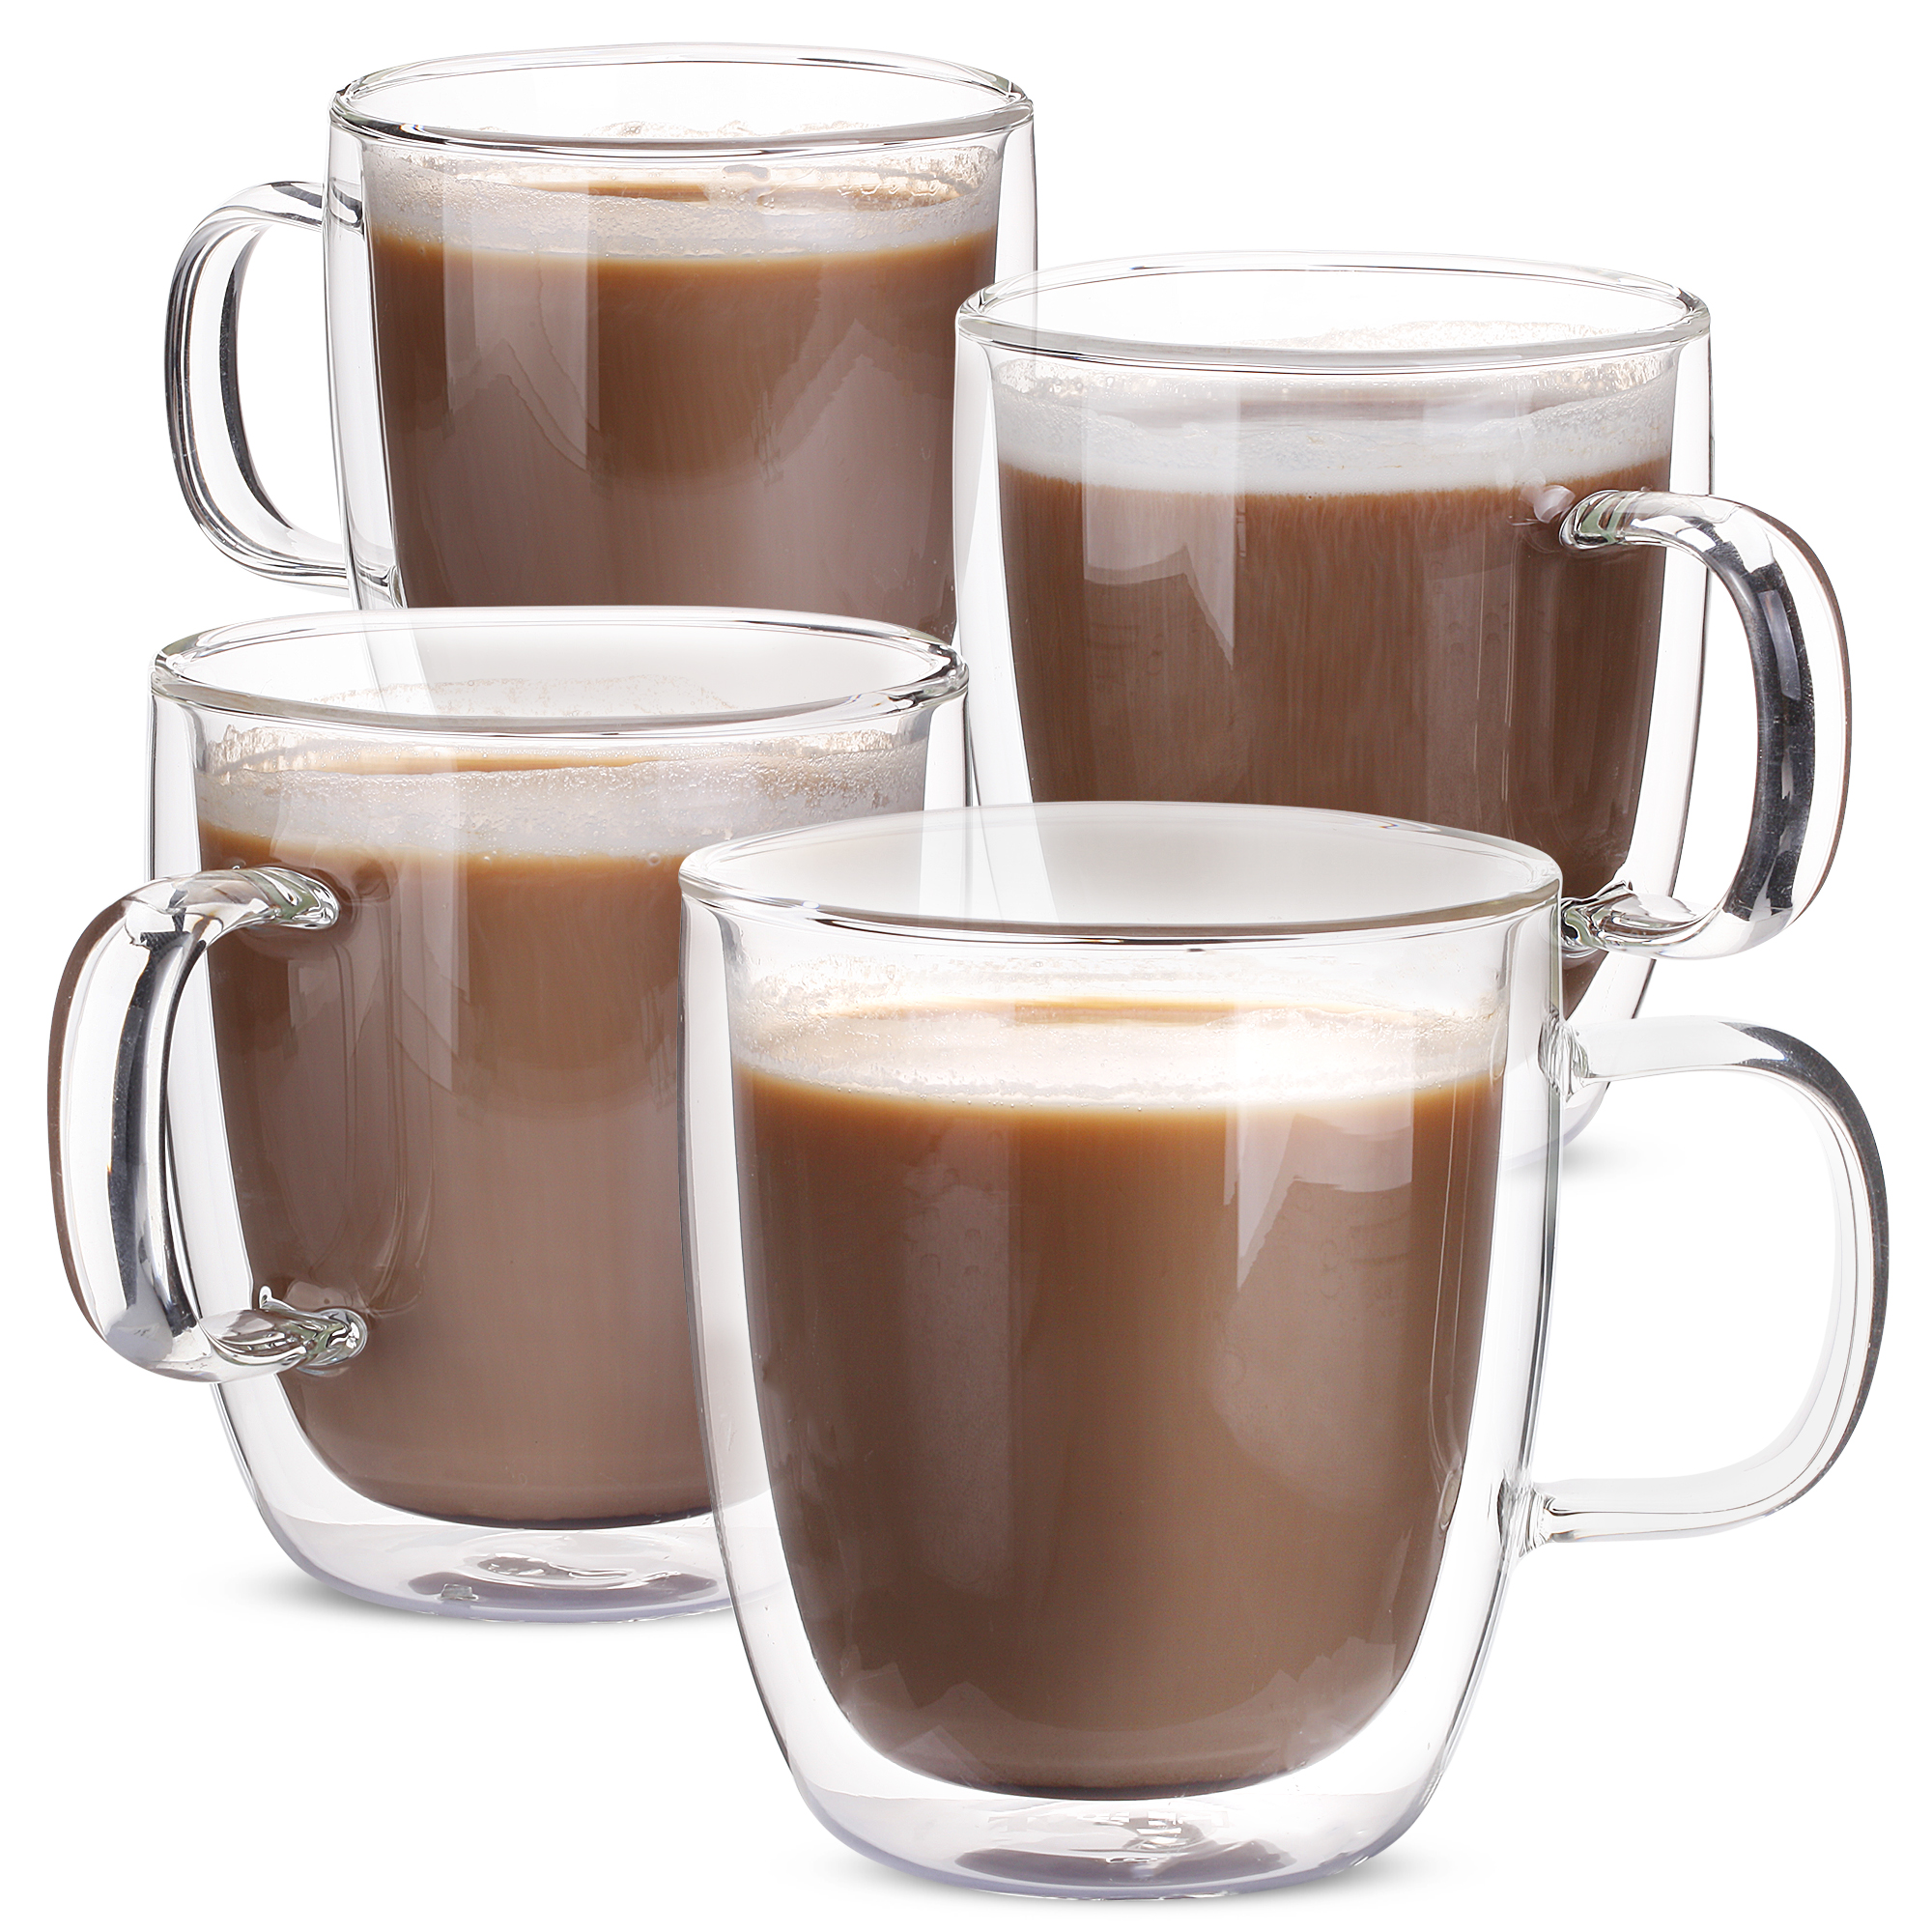 Btat Insulated Coffee Mugs 12oz 350ml Btat